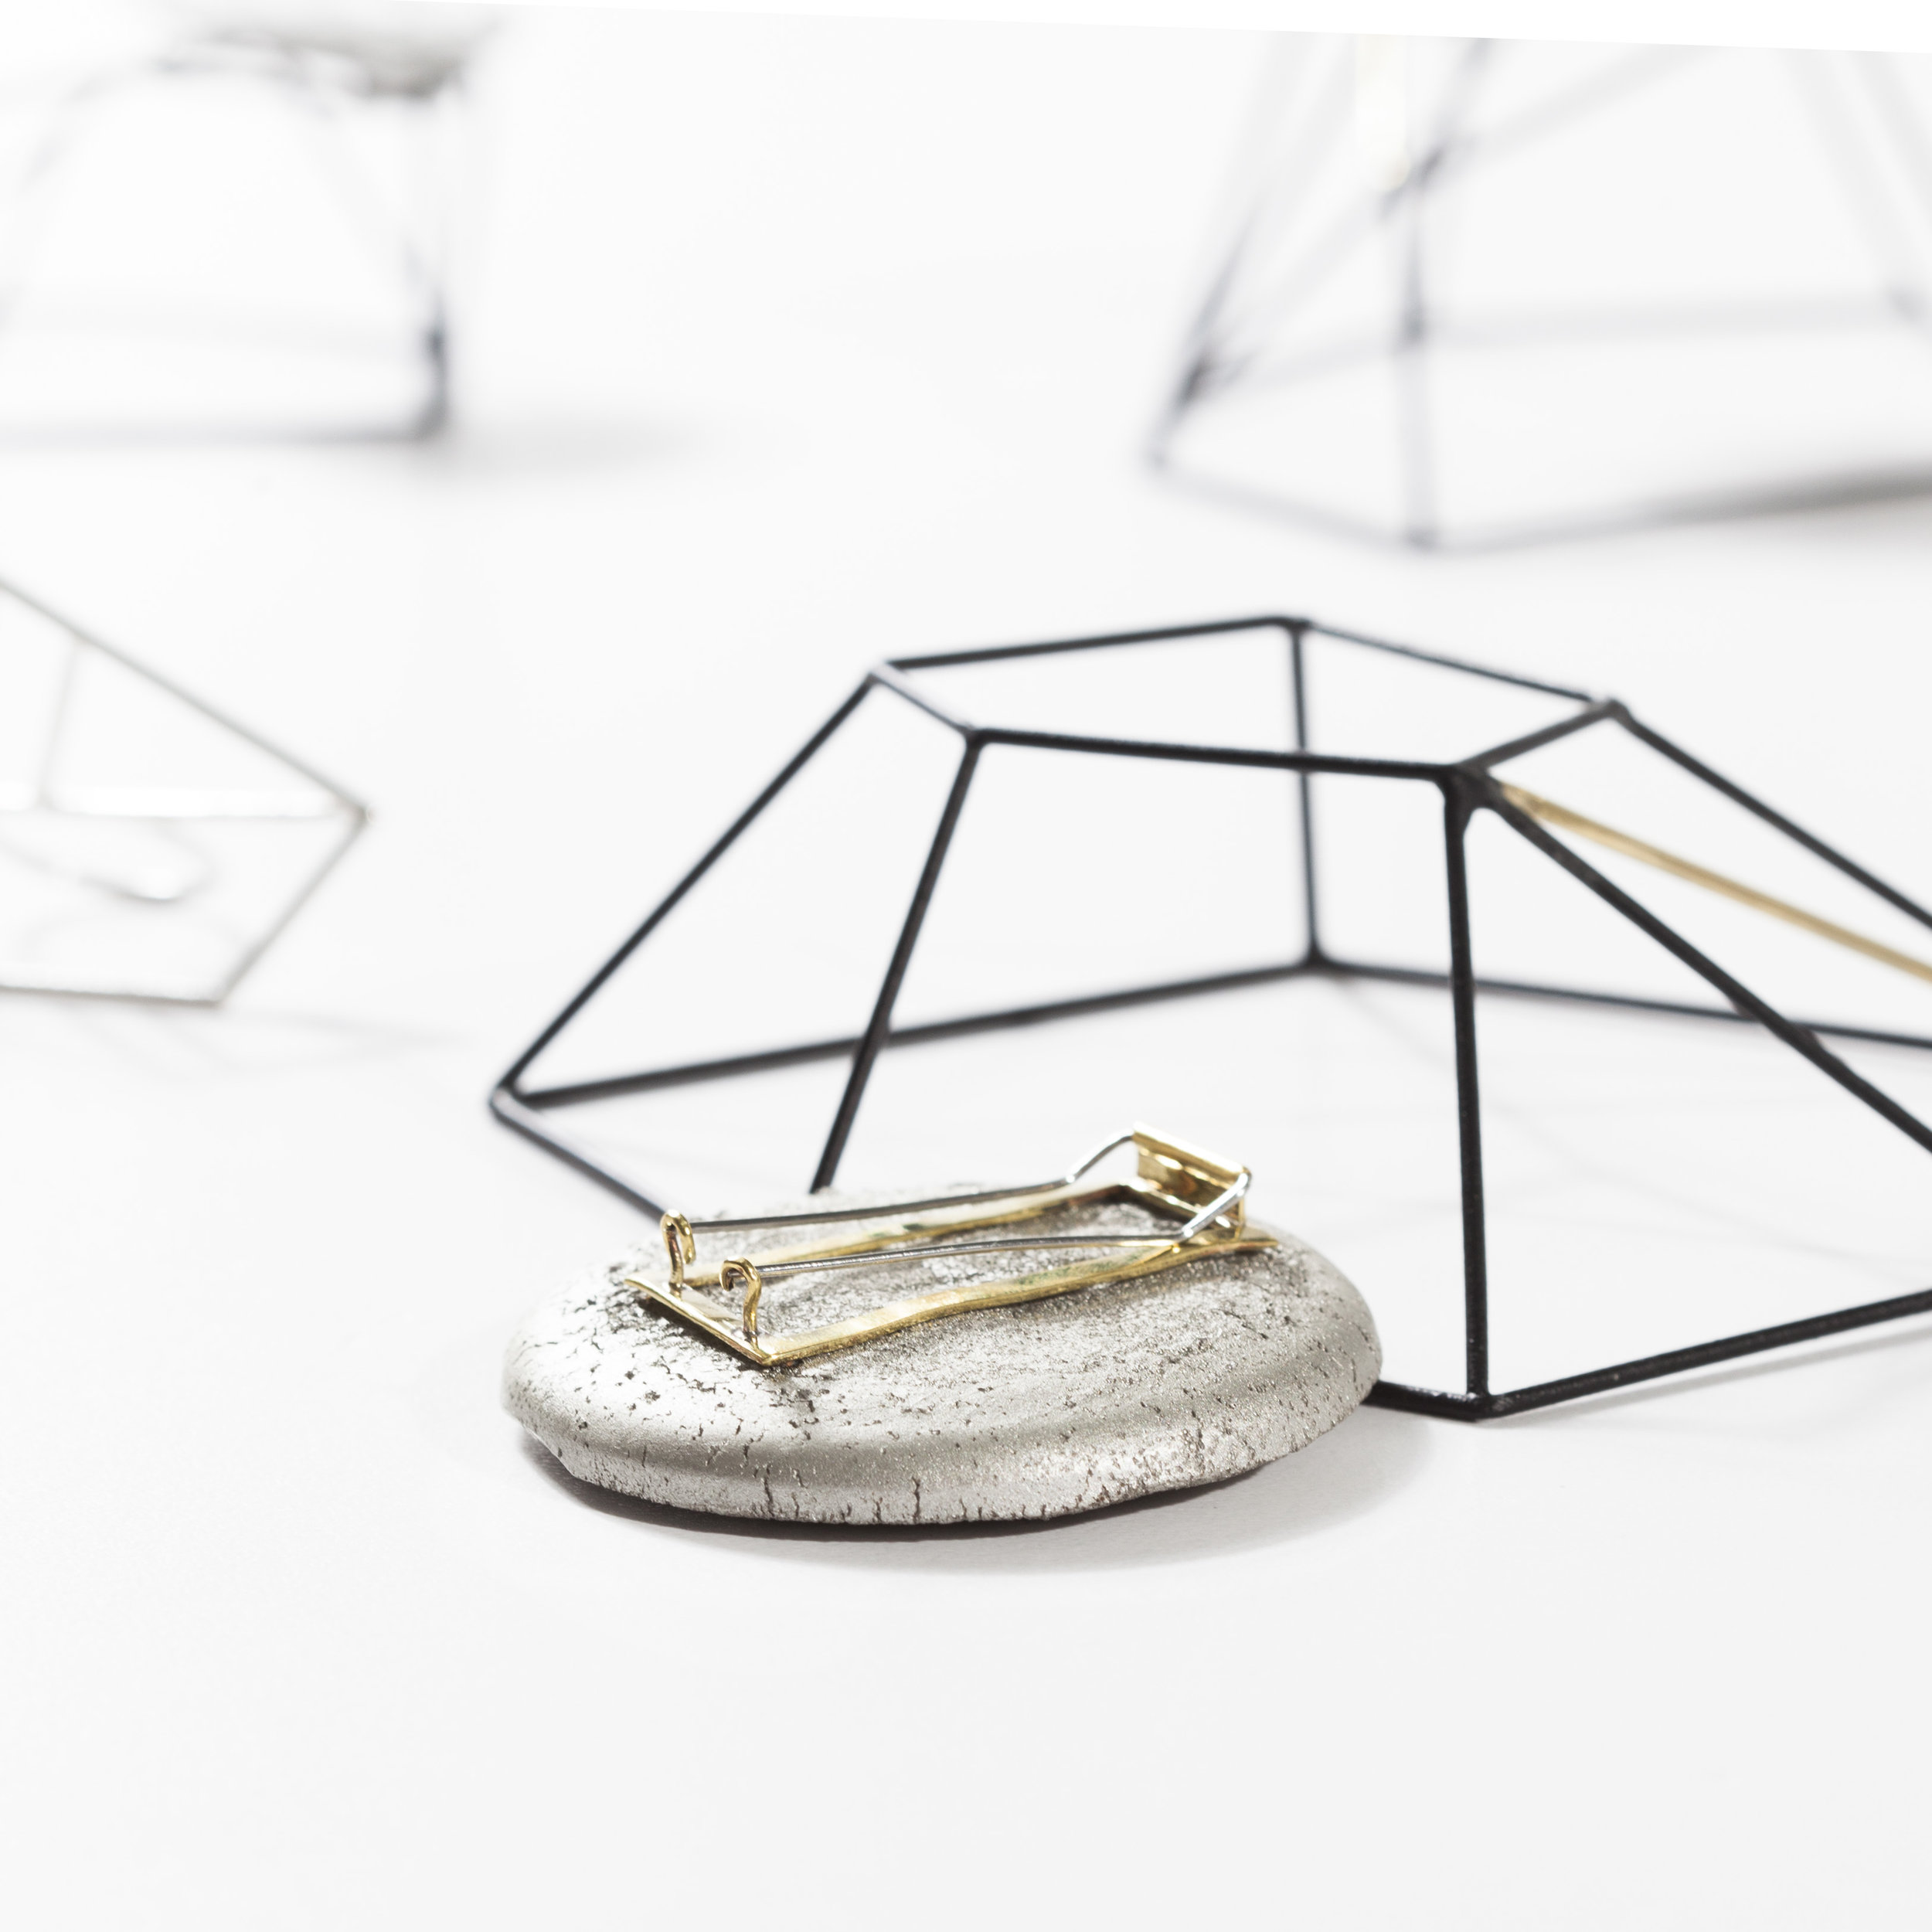 Emma-Field-Geometric-Sculpture-Brooch-Back-Detail-Brass-Aluminium.jpg